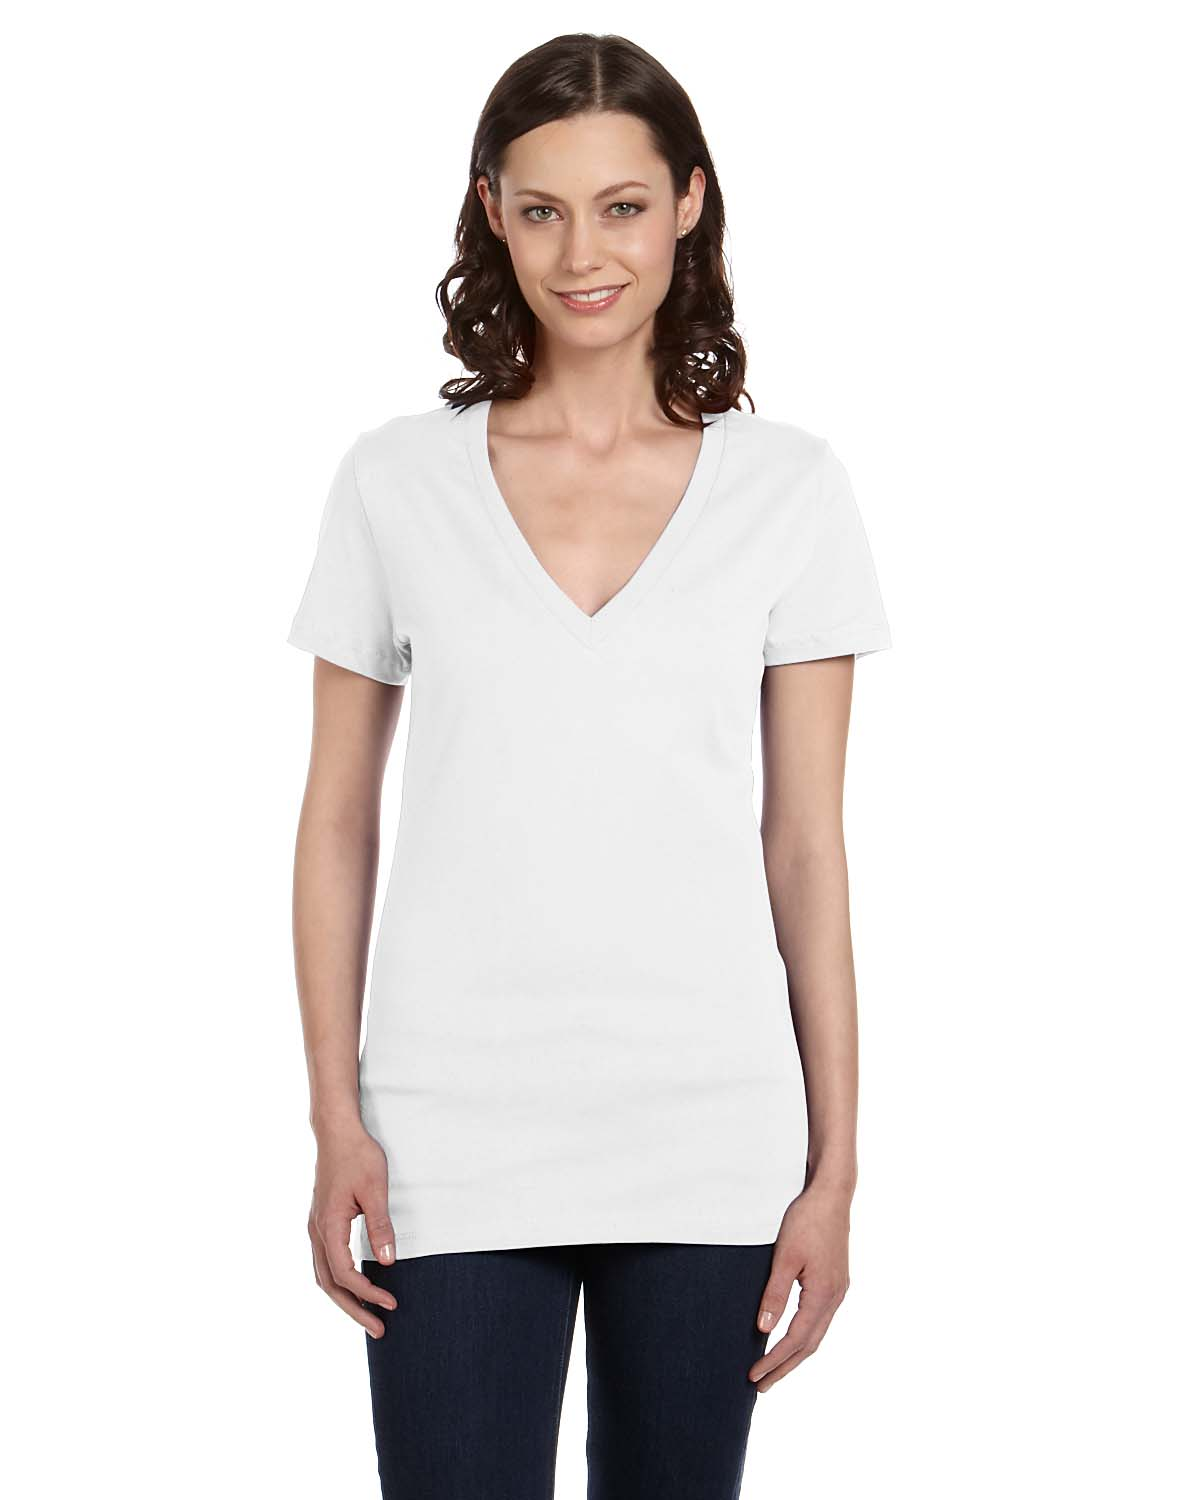 bella canvas b6035 women 39 s deep v neck t shirt shirtmax